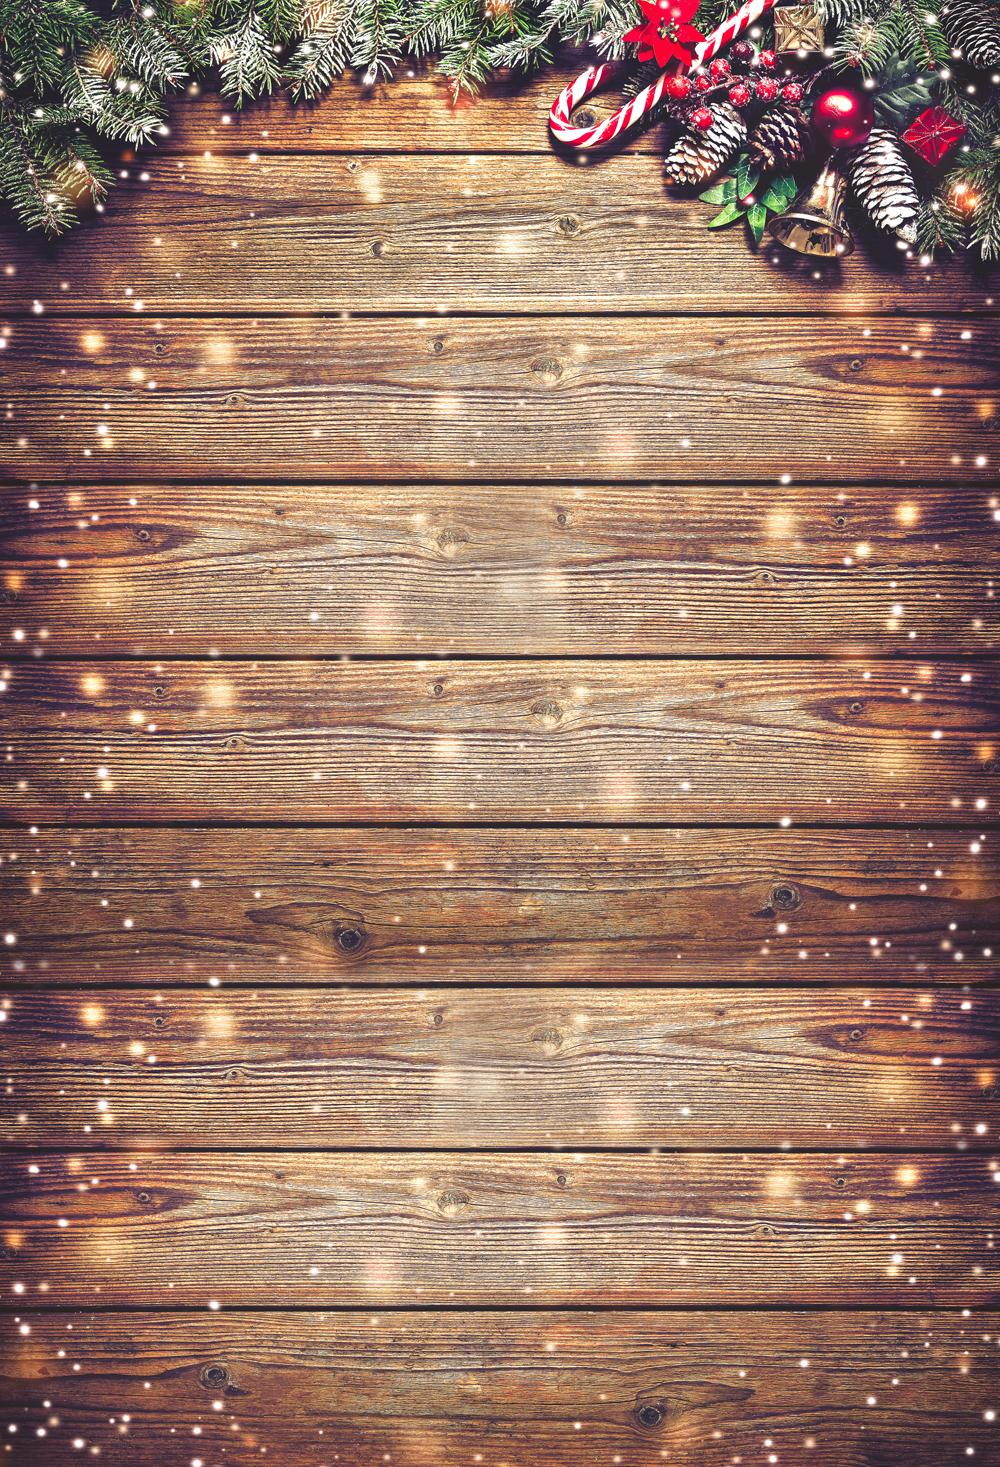 Christmas Wood Background.Us 6 2 38 Off Huayi Snowflake Christmas Photography Backdrop Xmas Wood Background For Children Photo Studio Props Photobooth Xt 7395 In Background